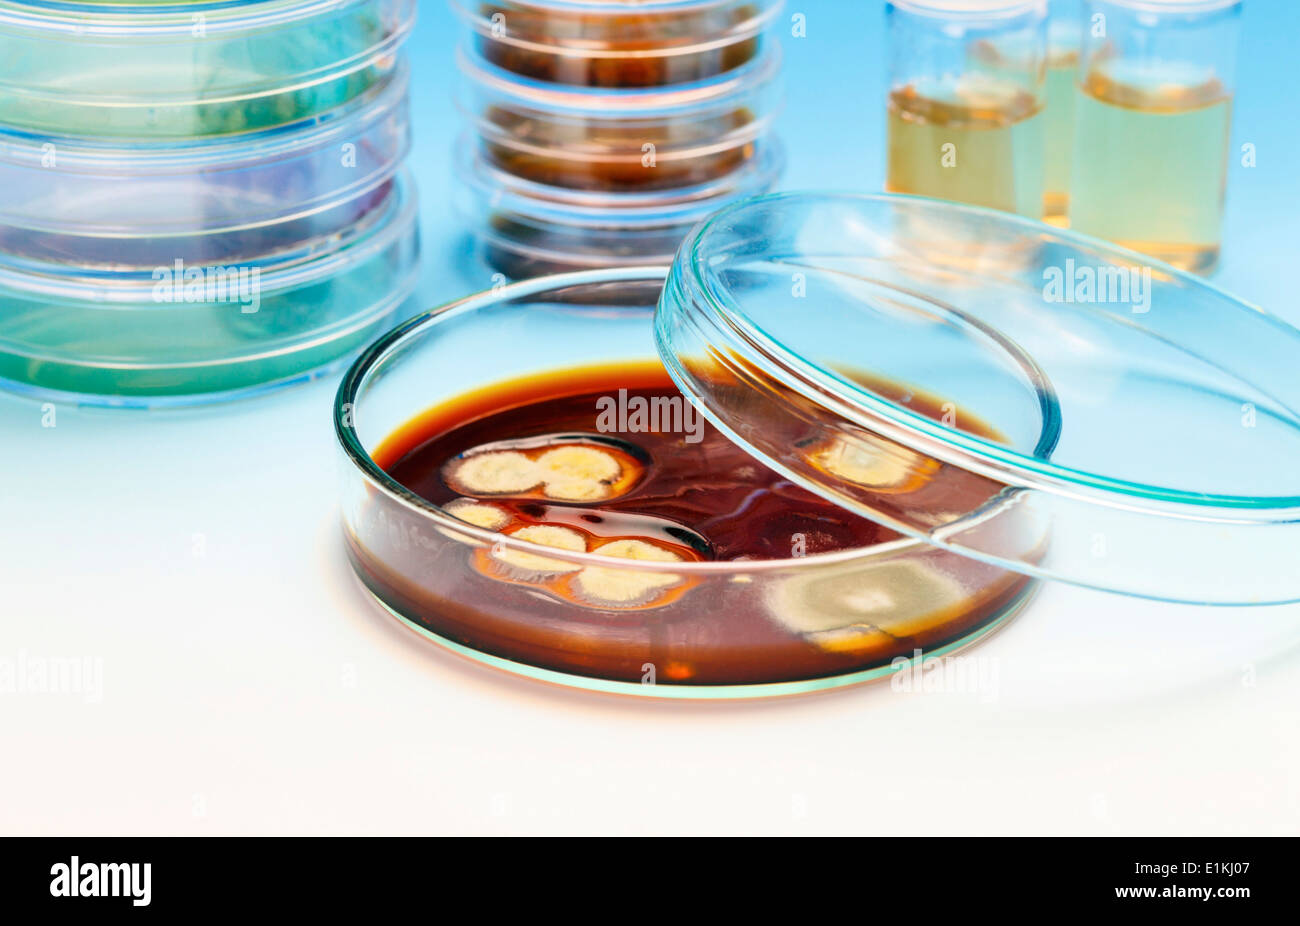 Petri dishes with samples of biological cultures. - Stock Image